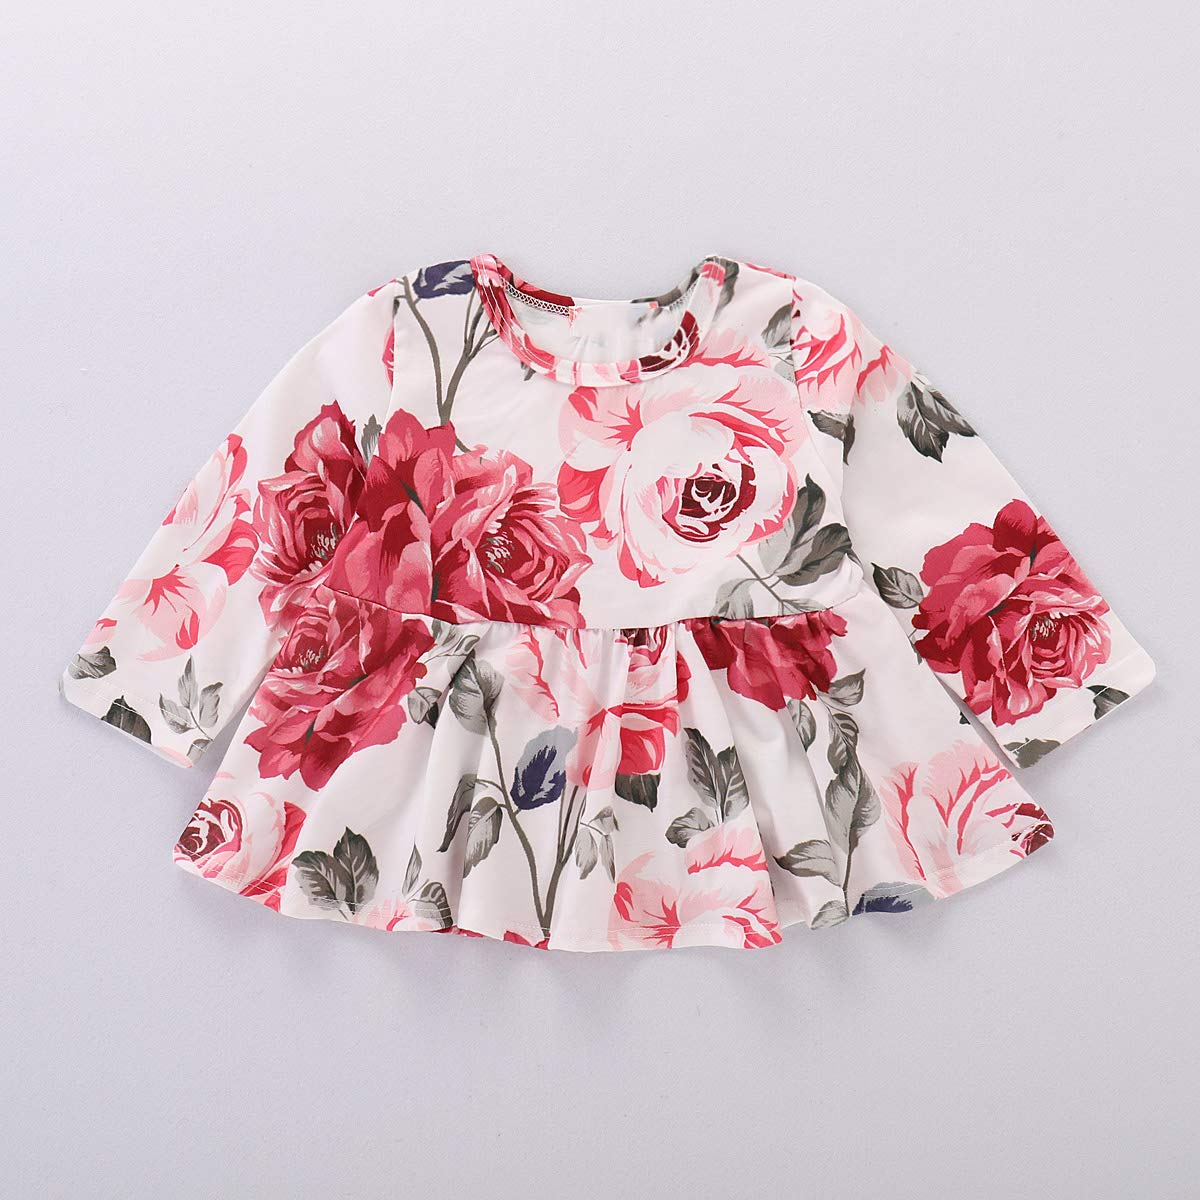 2Pcs Toddler Girls Long Sleeve Floral Shirt Tops Ripped Jeans Clothes Set